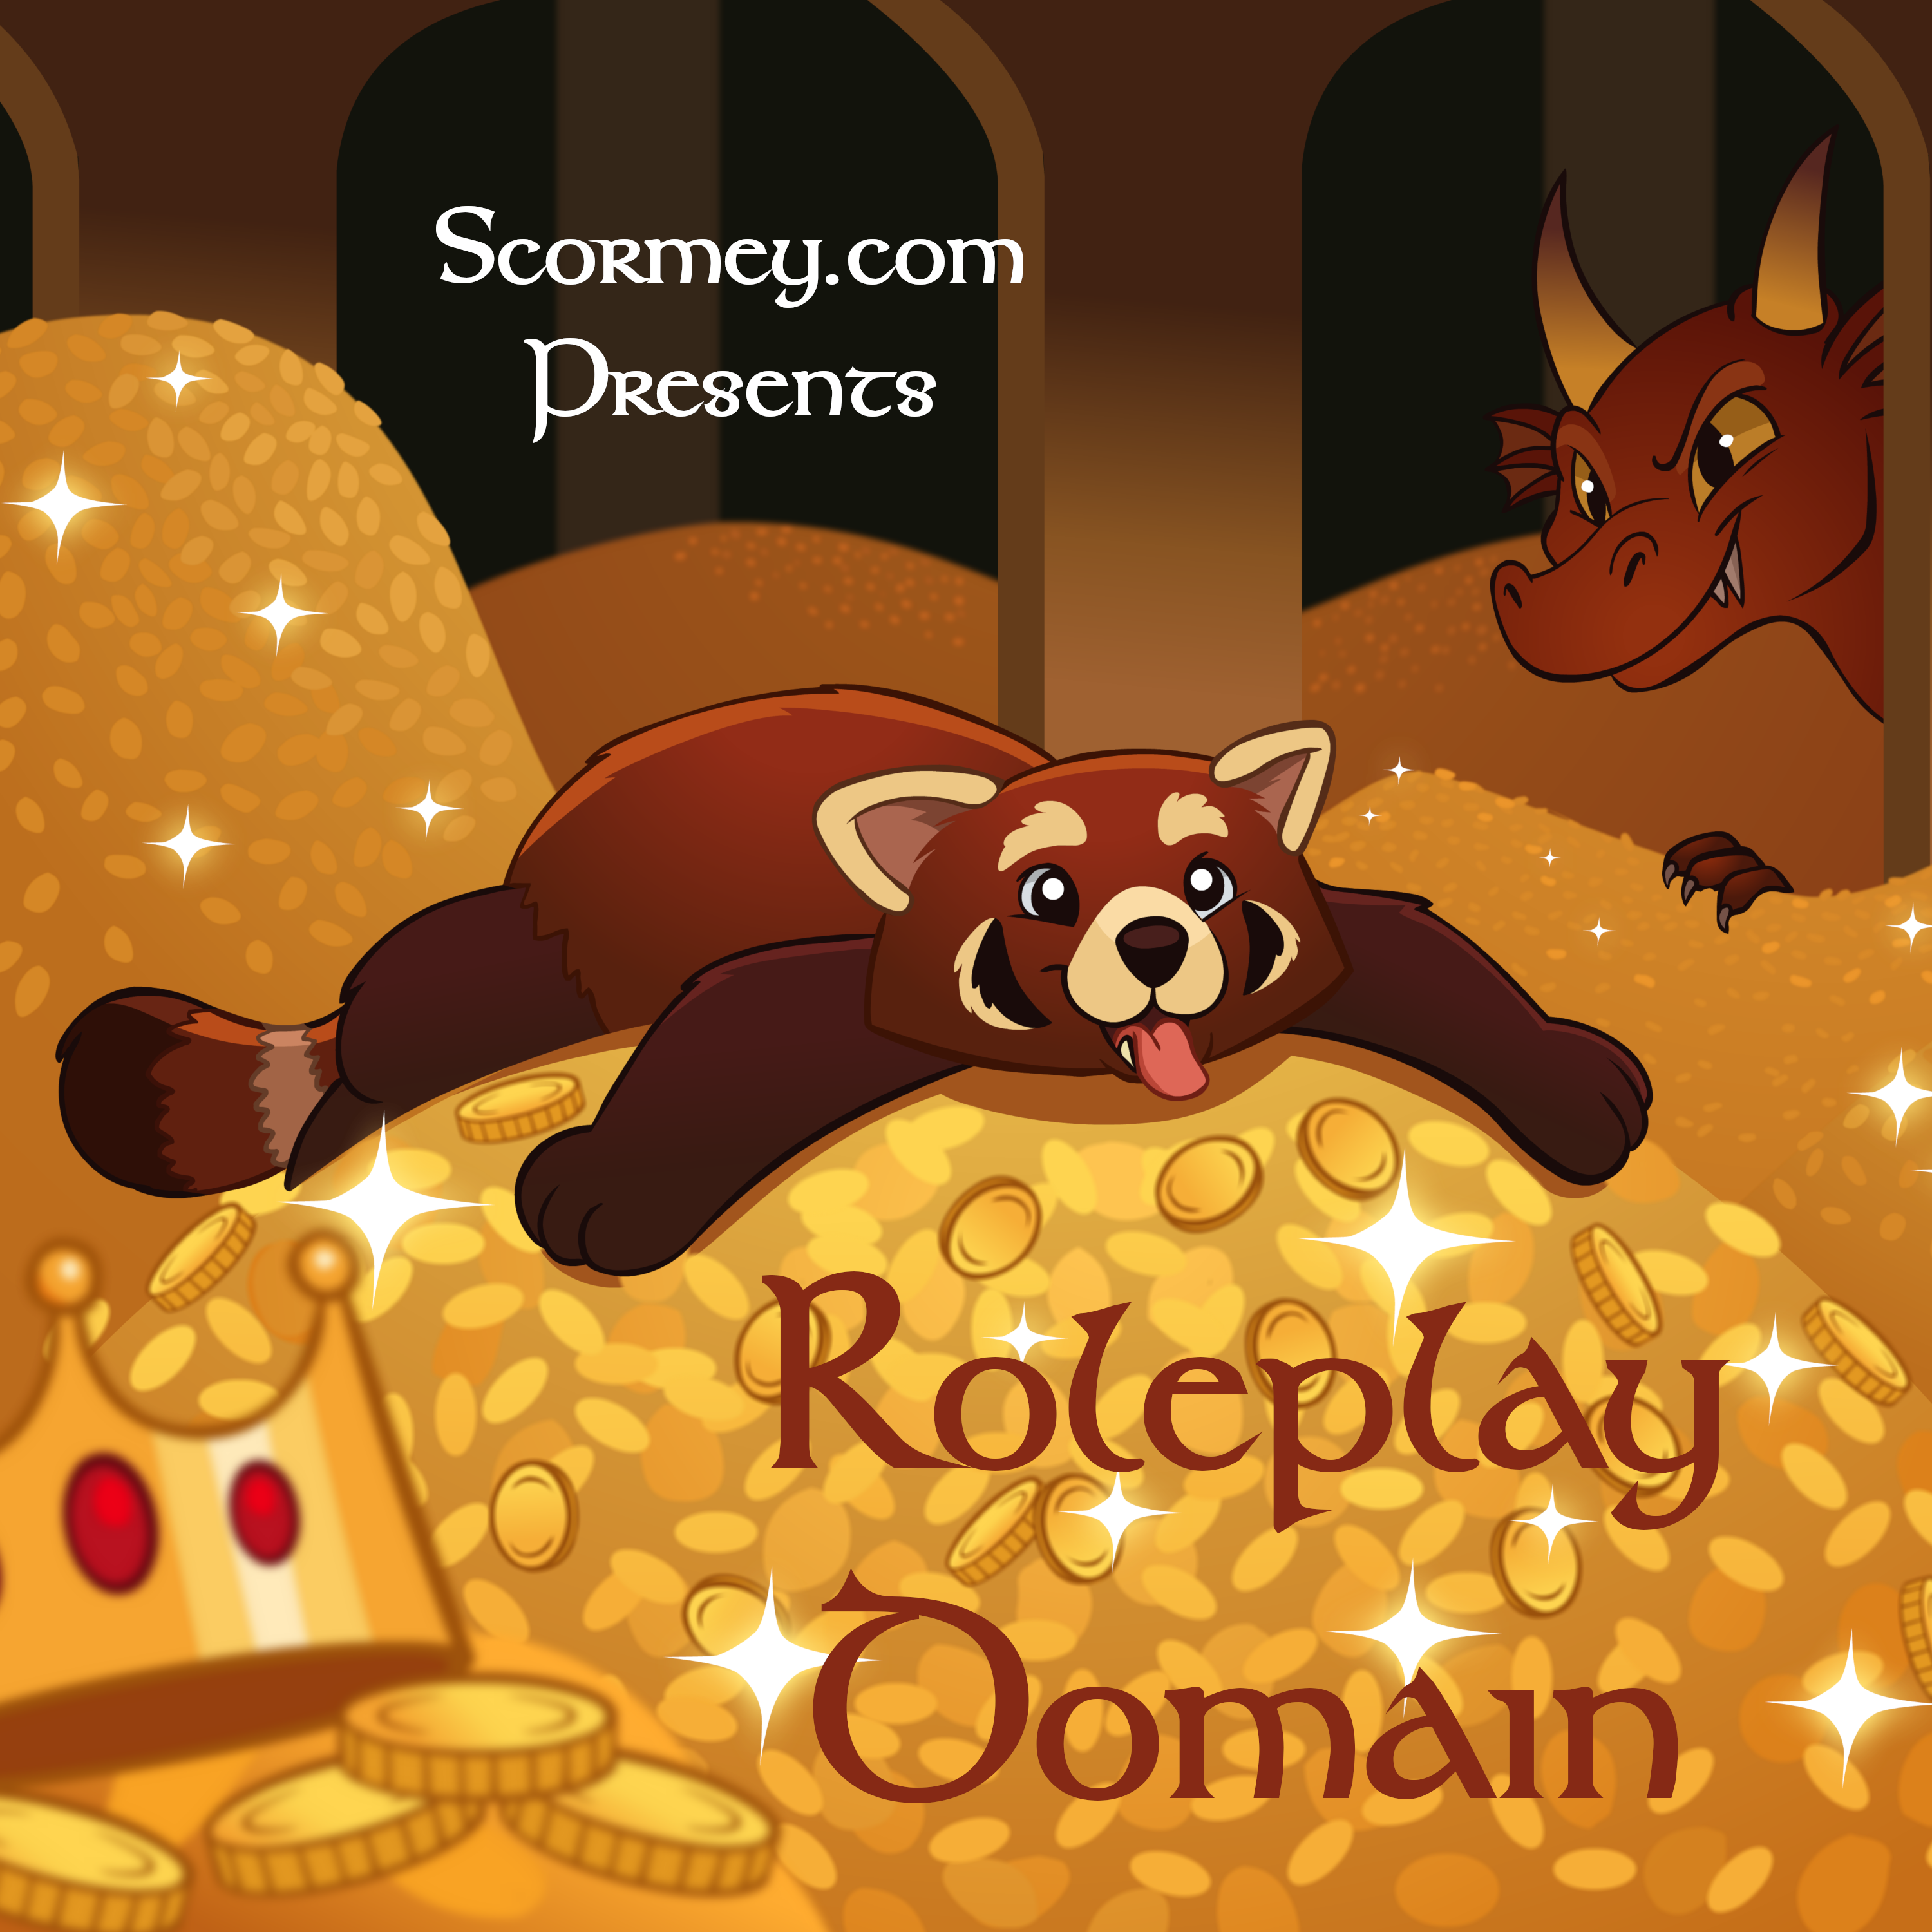 Roleplay Domain